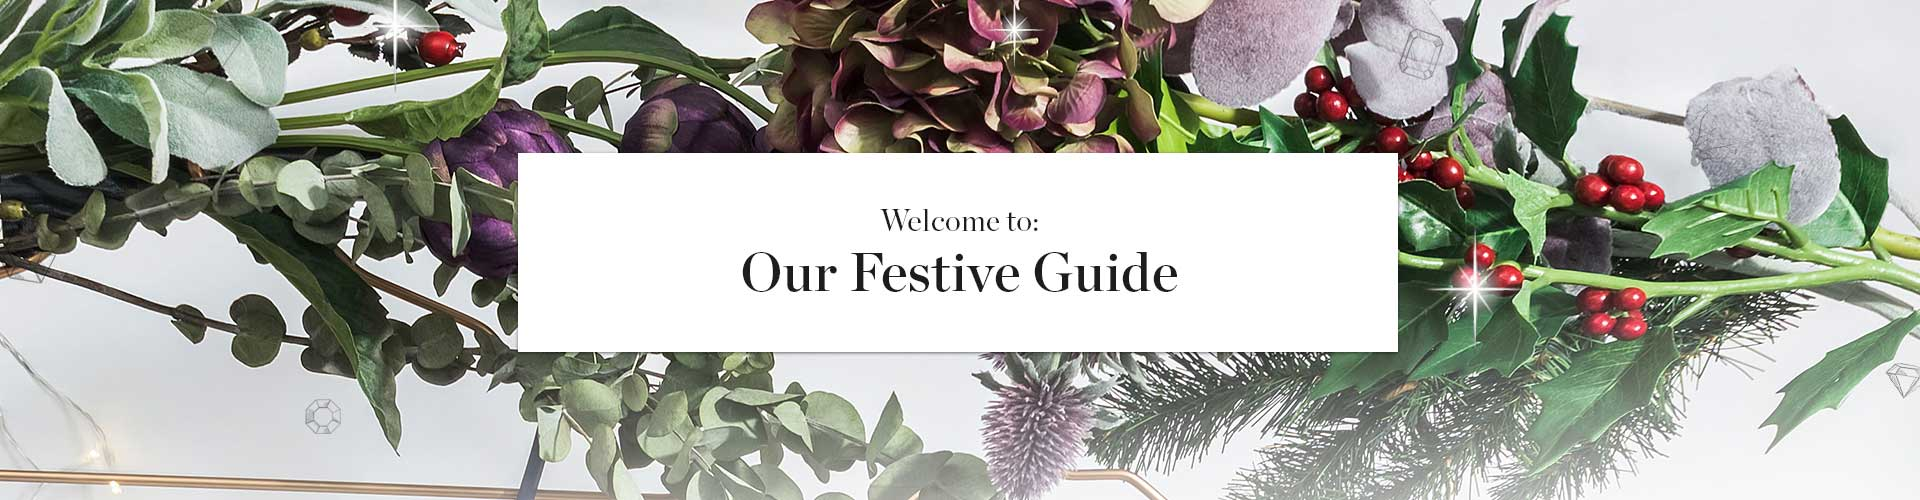 Our Festive Guide to the Season | festive lingerie